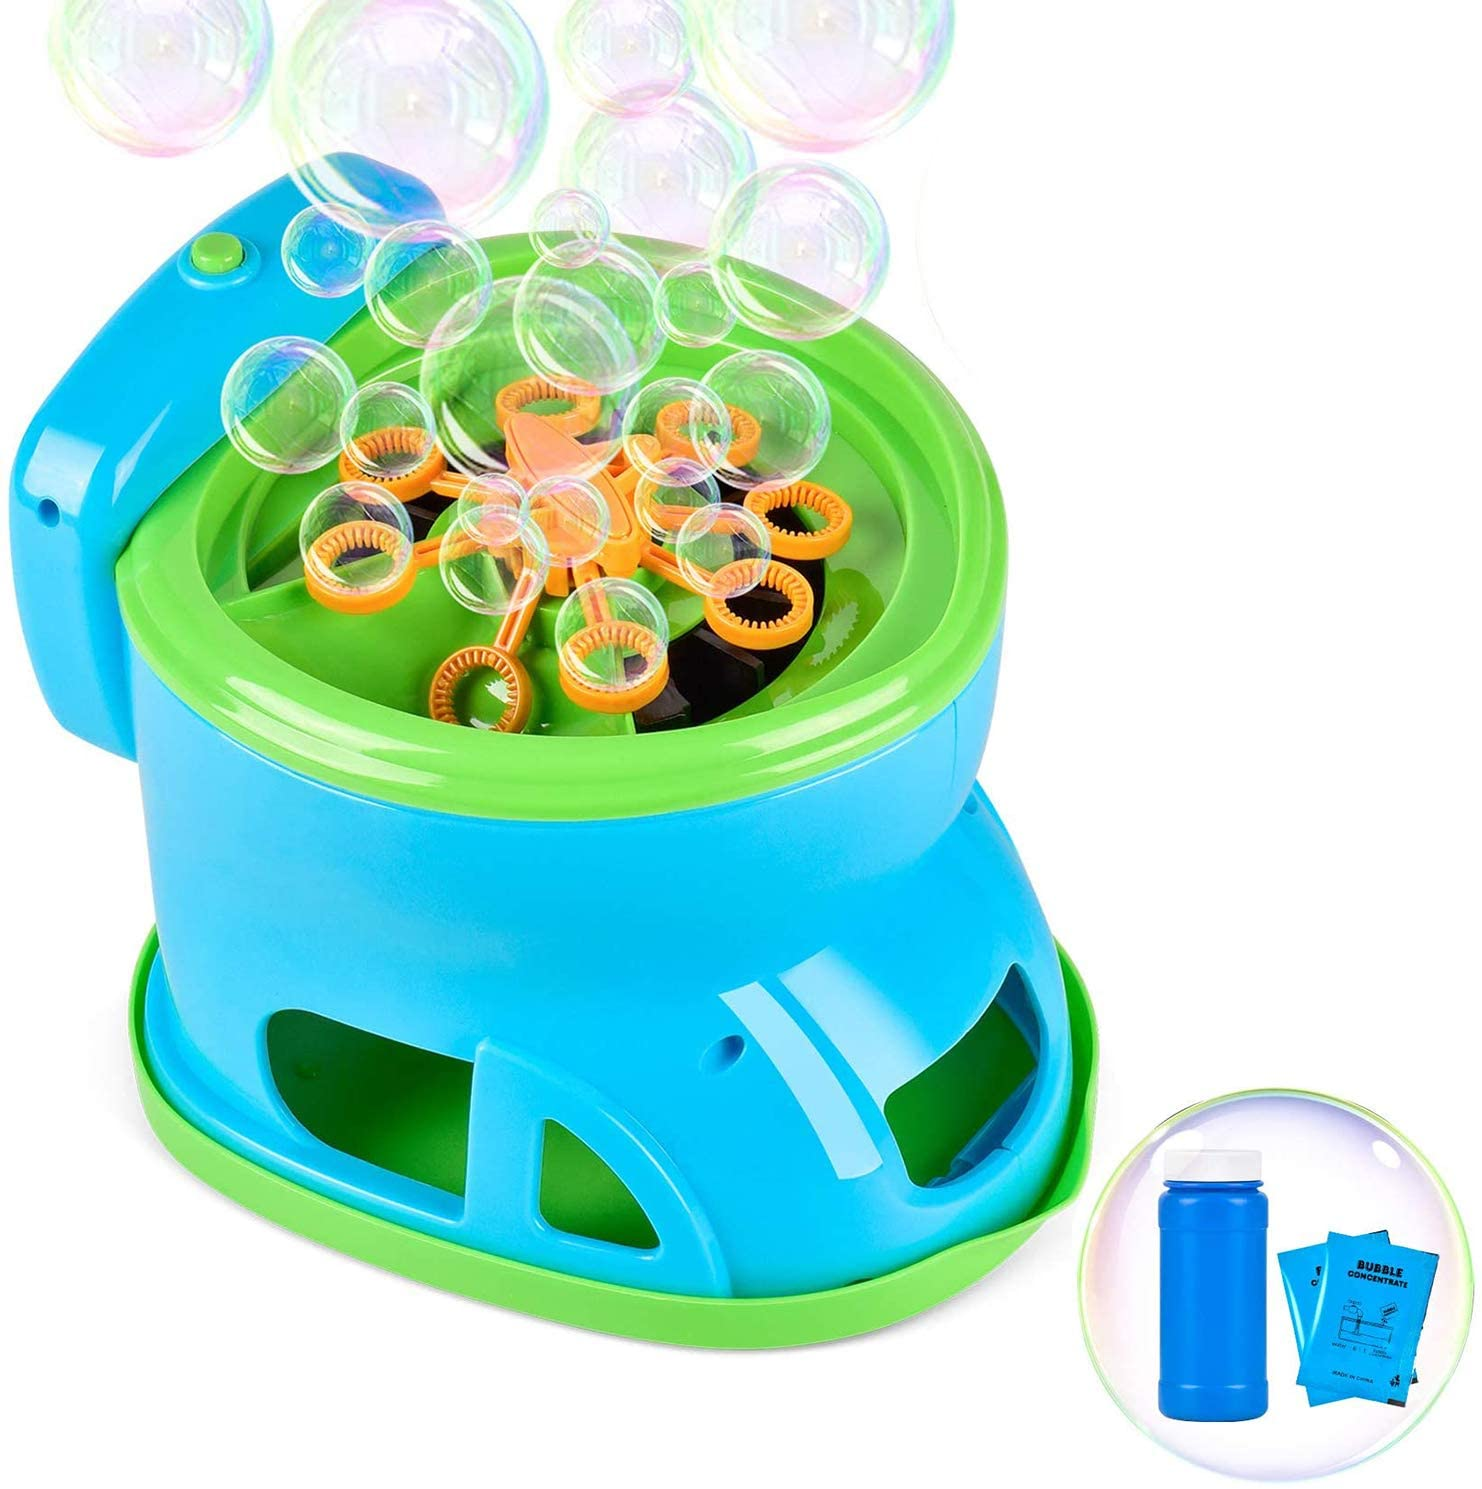 Bubble Machine, Automatic Bubble Maker Cartoon Toilet Bubble Blower Toy Over 2100 Bubbles Per Minute for Kids Boys Girls Easy to Use for Indoor Outdoor Party Wedding Baby Showers